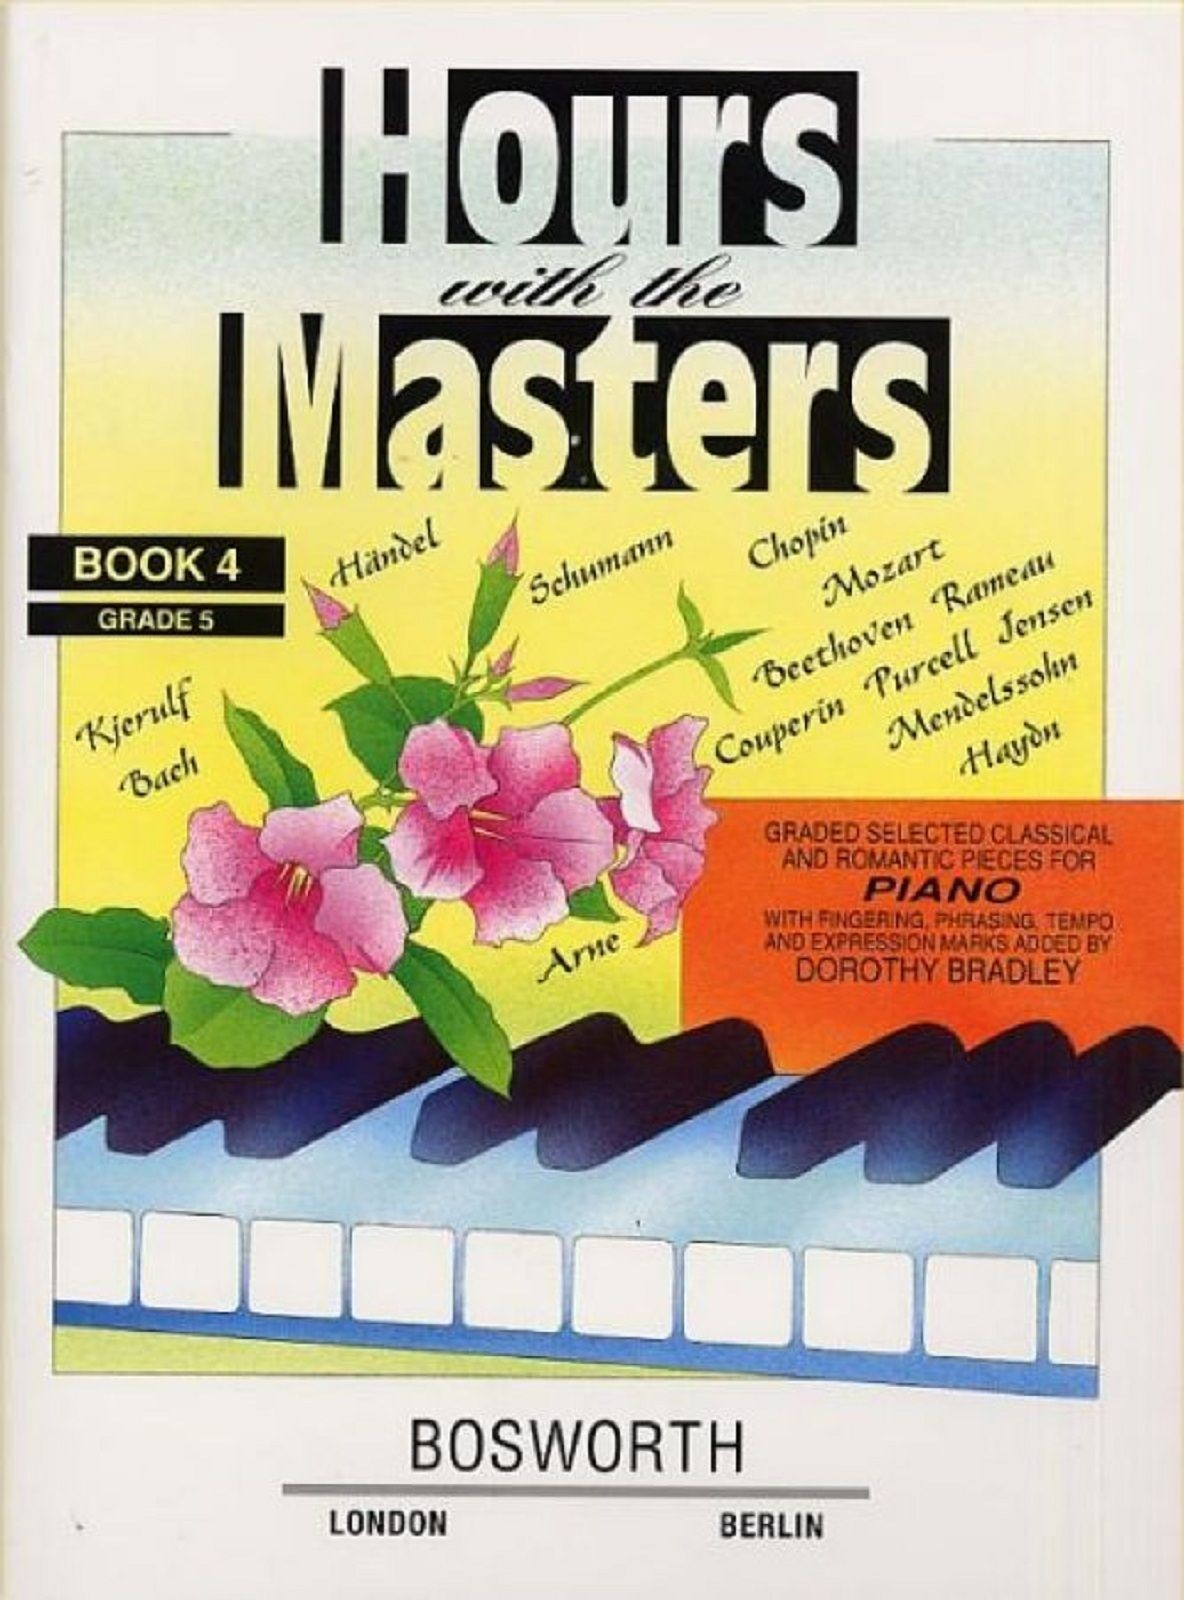 Hours With The Masters Book 4 Grade 5 Sheet Music Book Piano Bradley S163